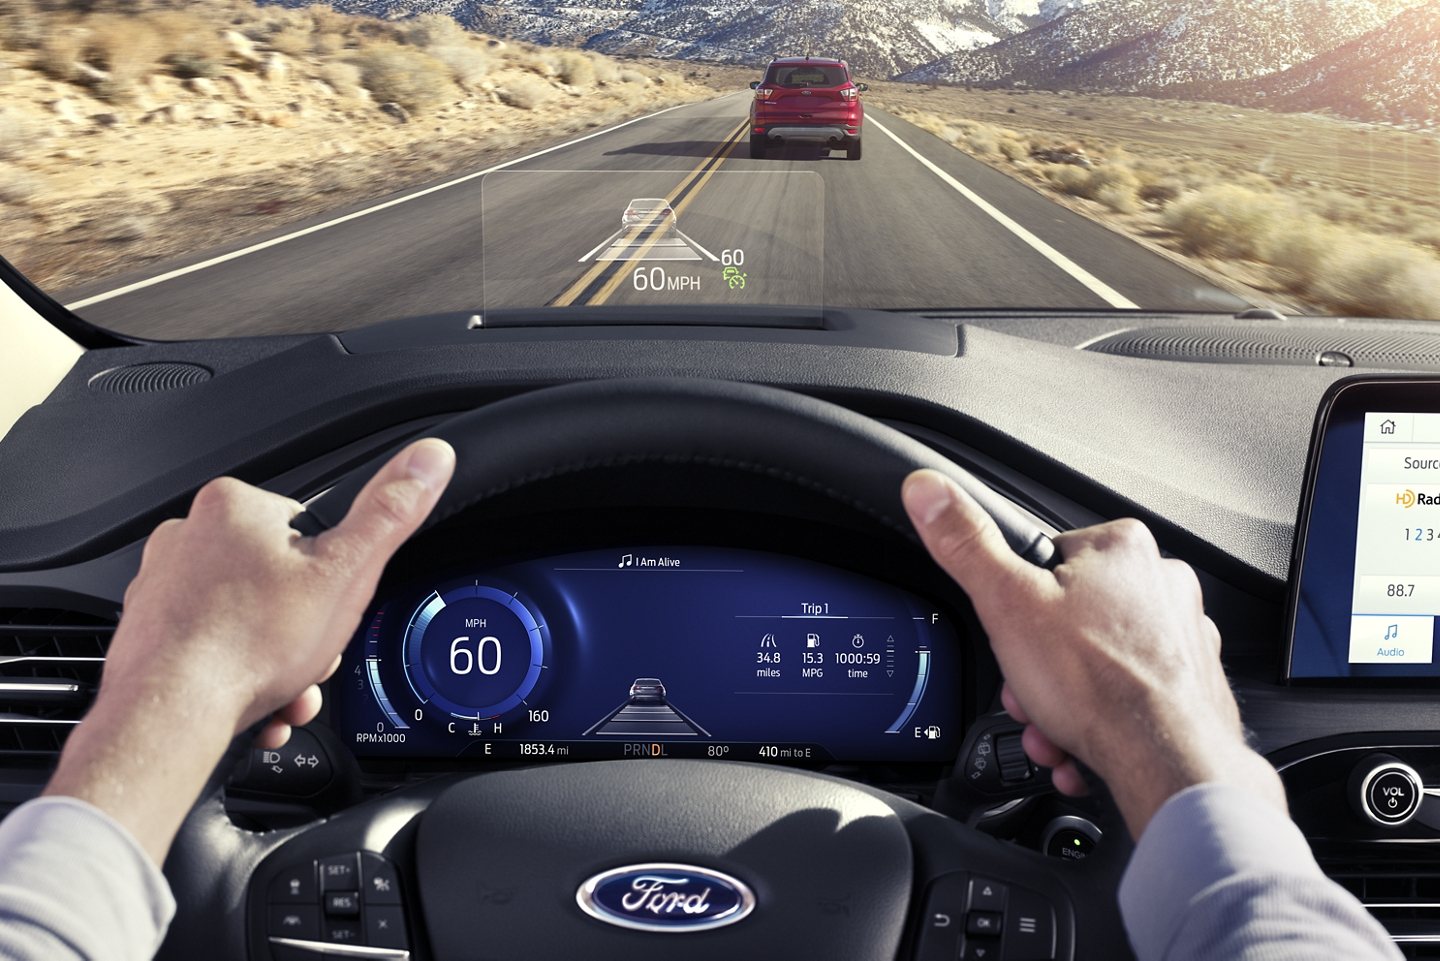 2020 Escape With Available Head-Up Display